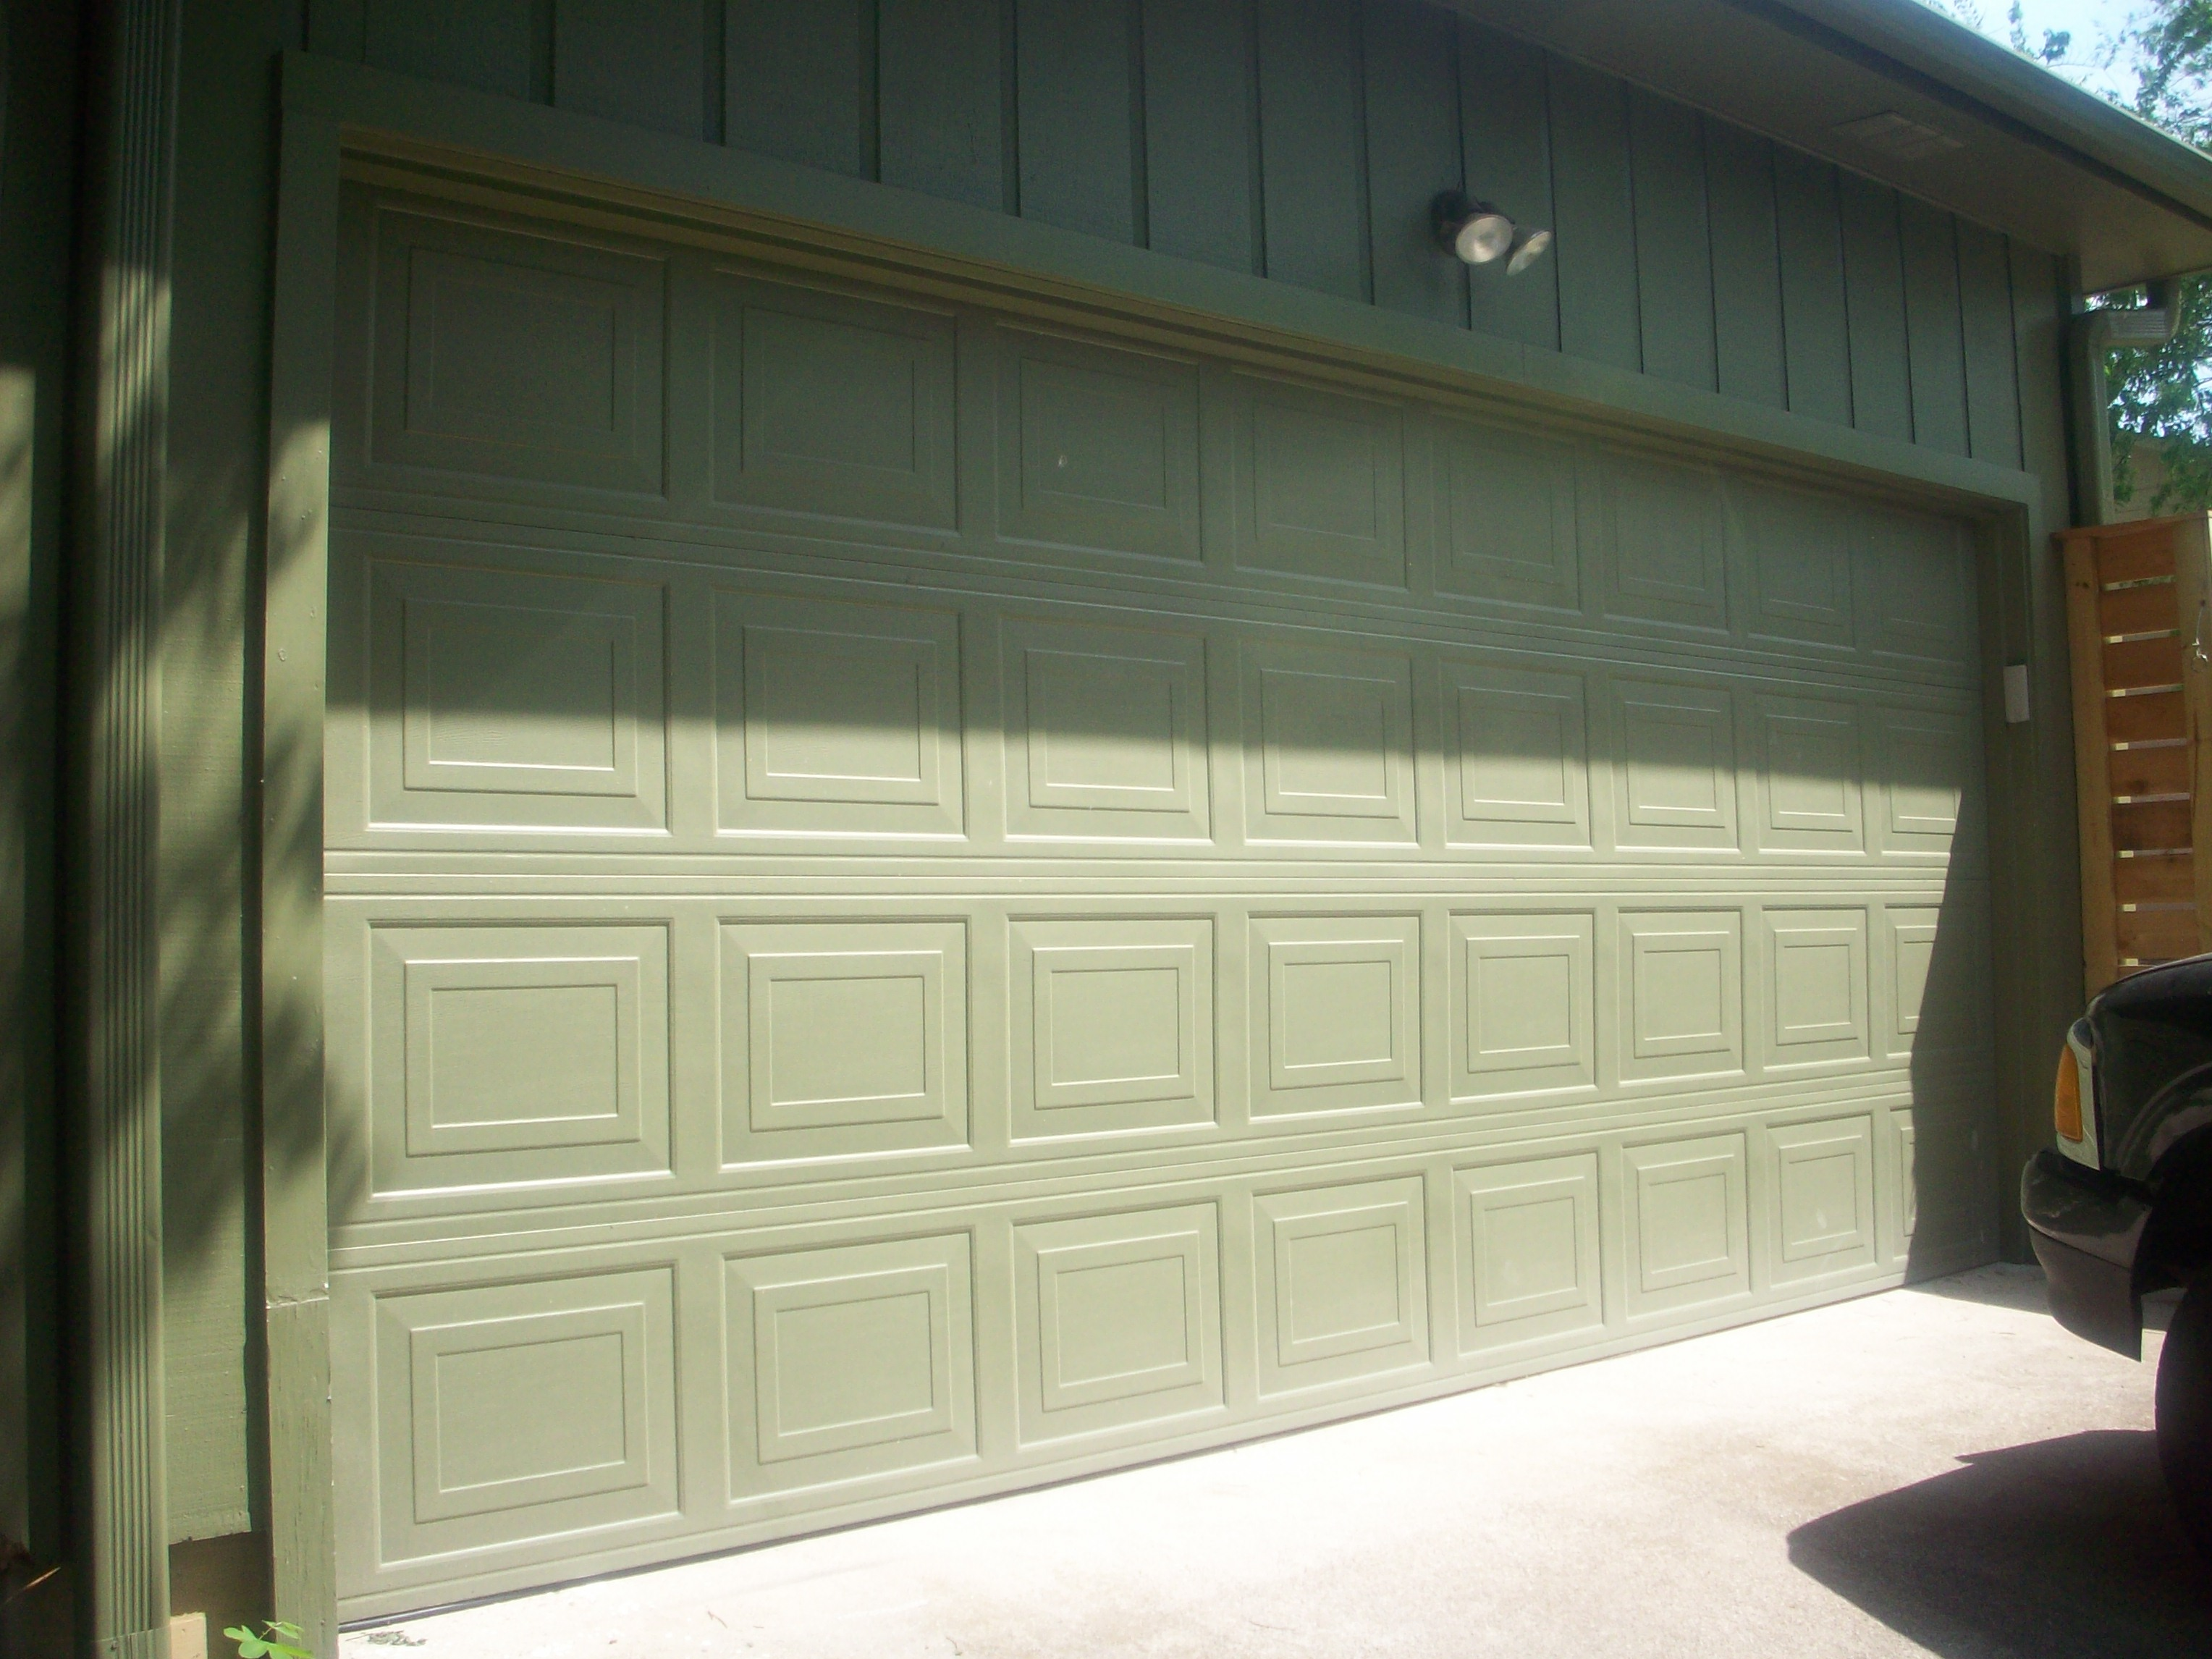 2292 #5C472B Chocolate Brown Garage Door THE CAVENDER DIARY pic Garage Doors Colors 37513056